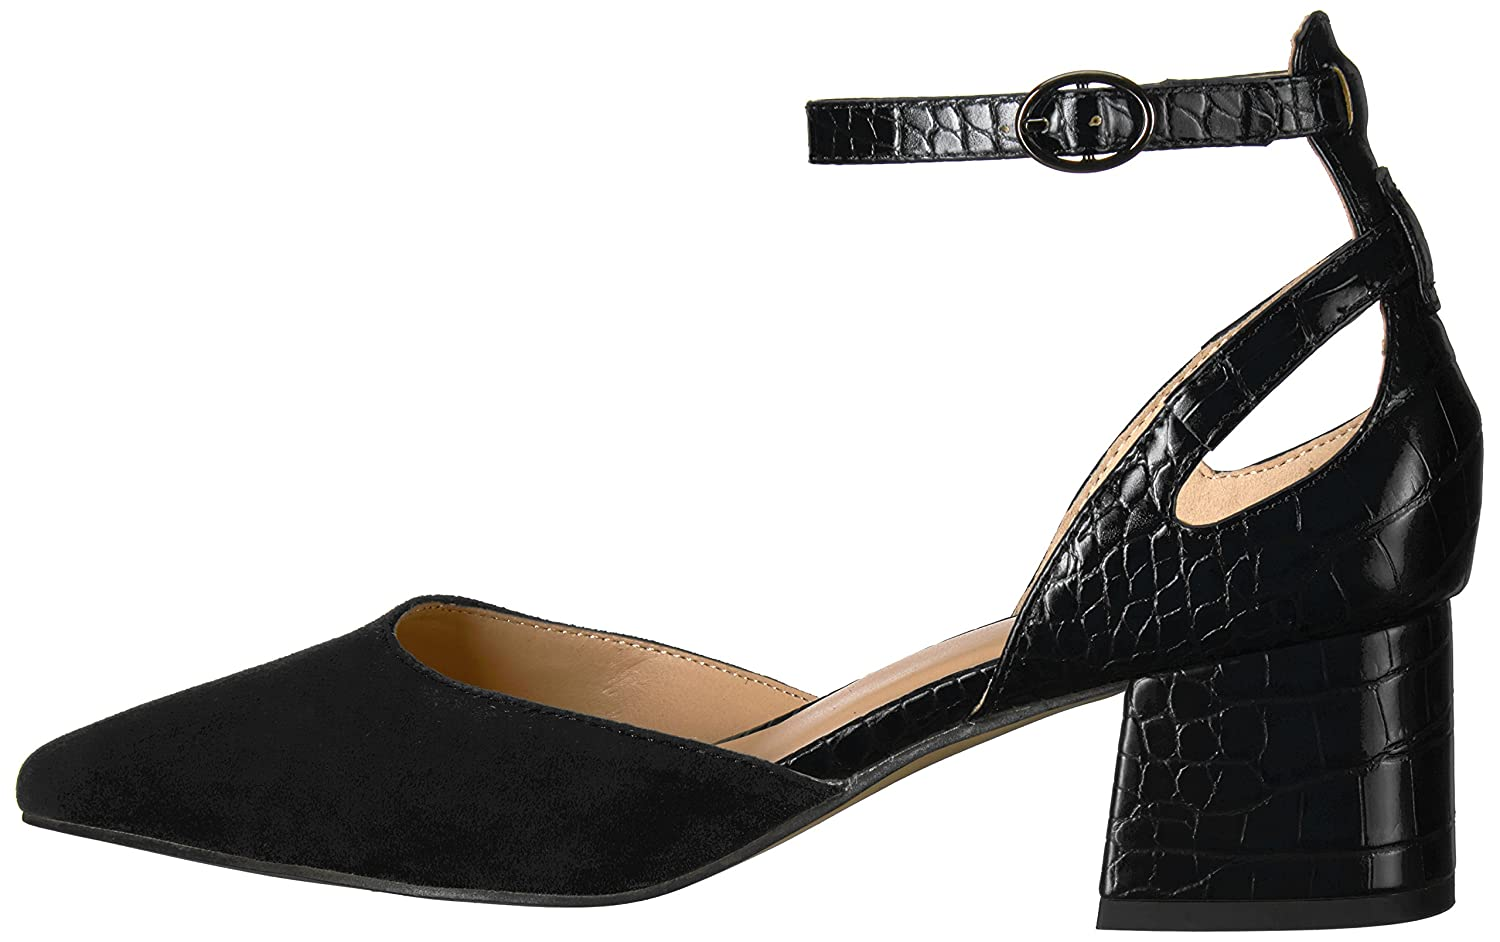 Franco Sarto Women's Caleigh Pump B06XSNWWSG 6 B(M) US|Black